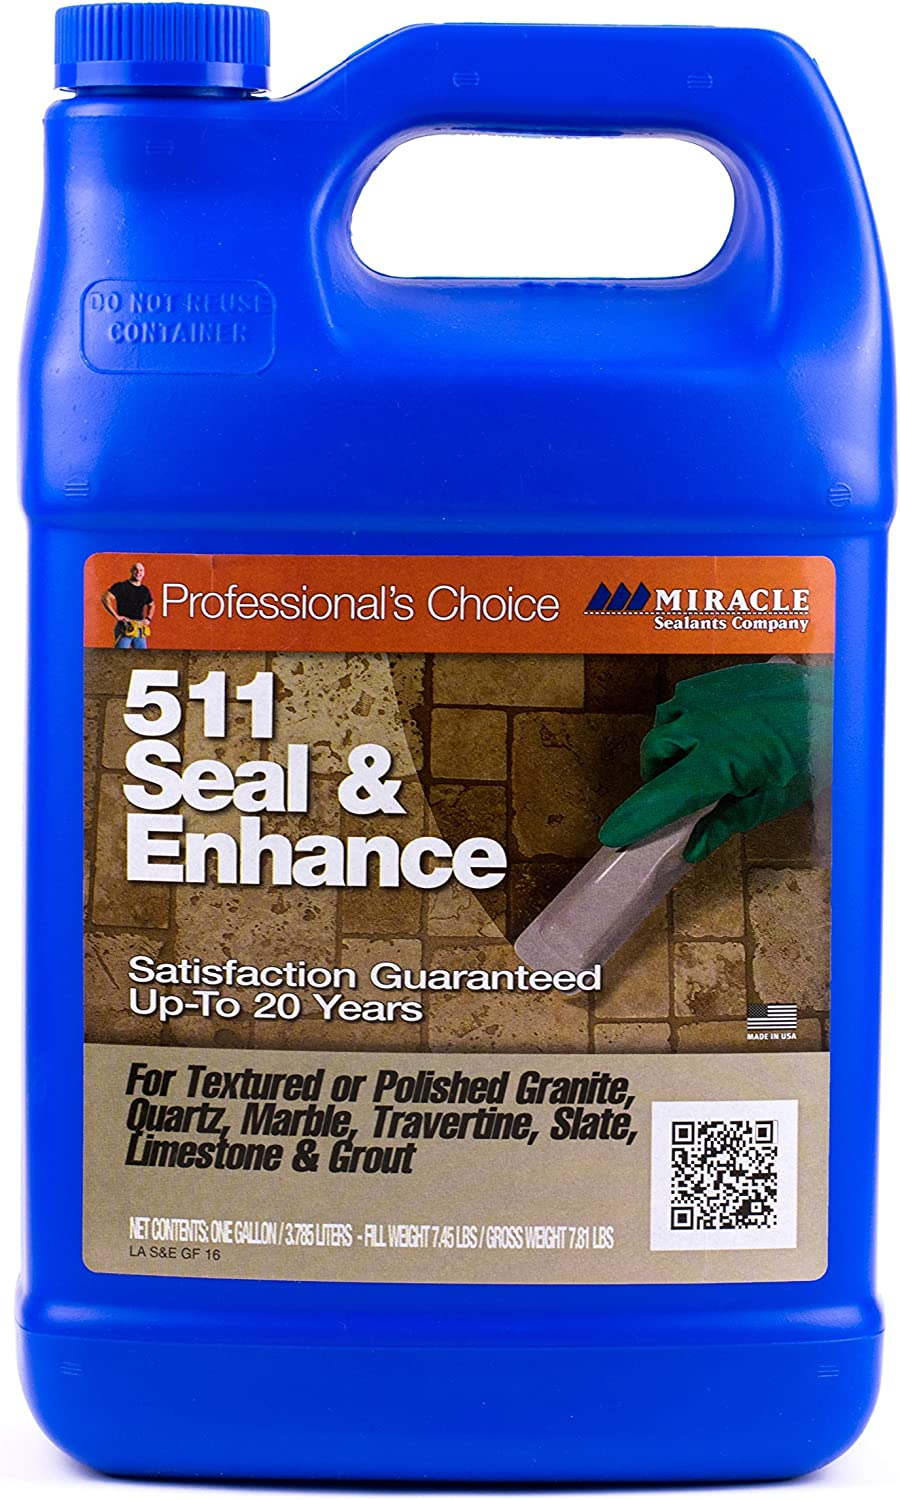 Miracle Sealants - 511 Seal and Enhance Penetrating Sealer and Color Enhancer 128oz - Gallon